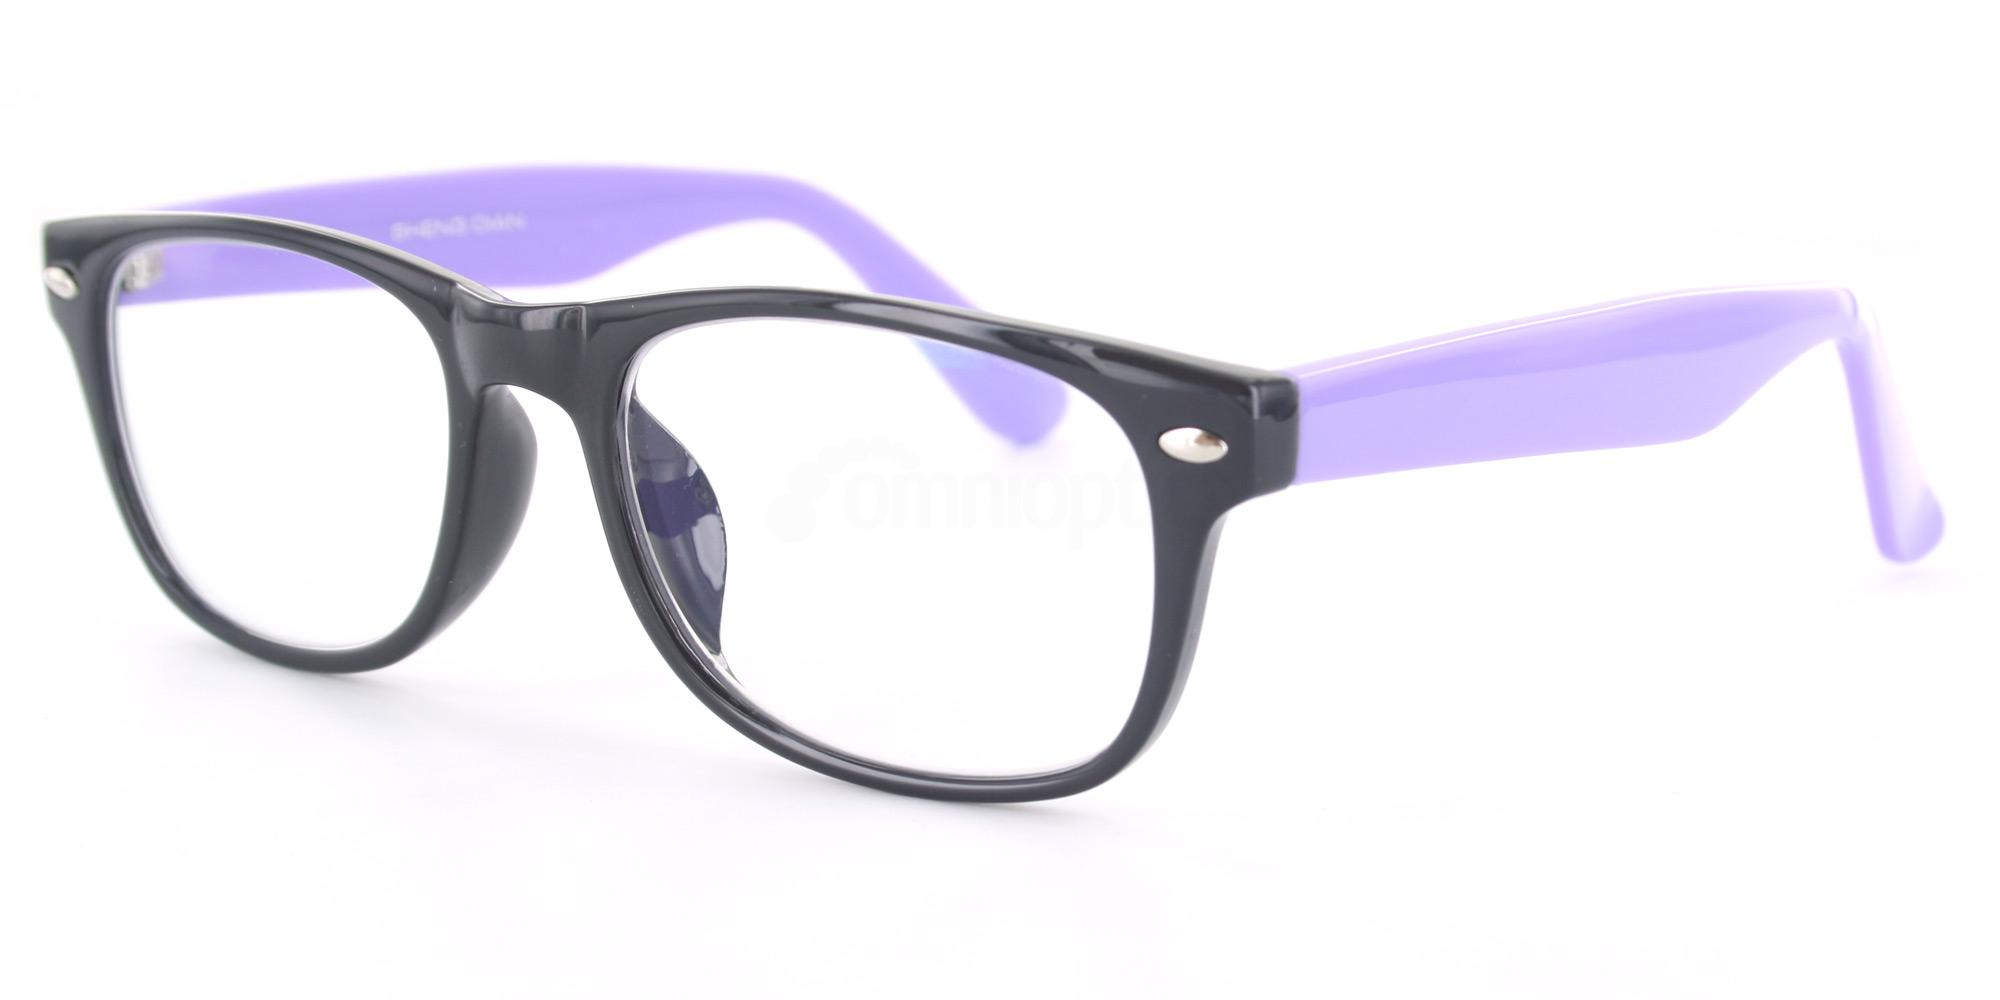 C90 P2383 - Black and Purple , Savannah